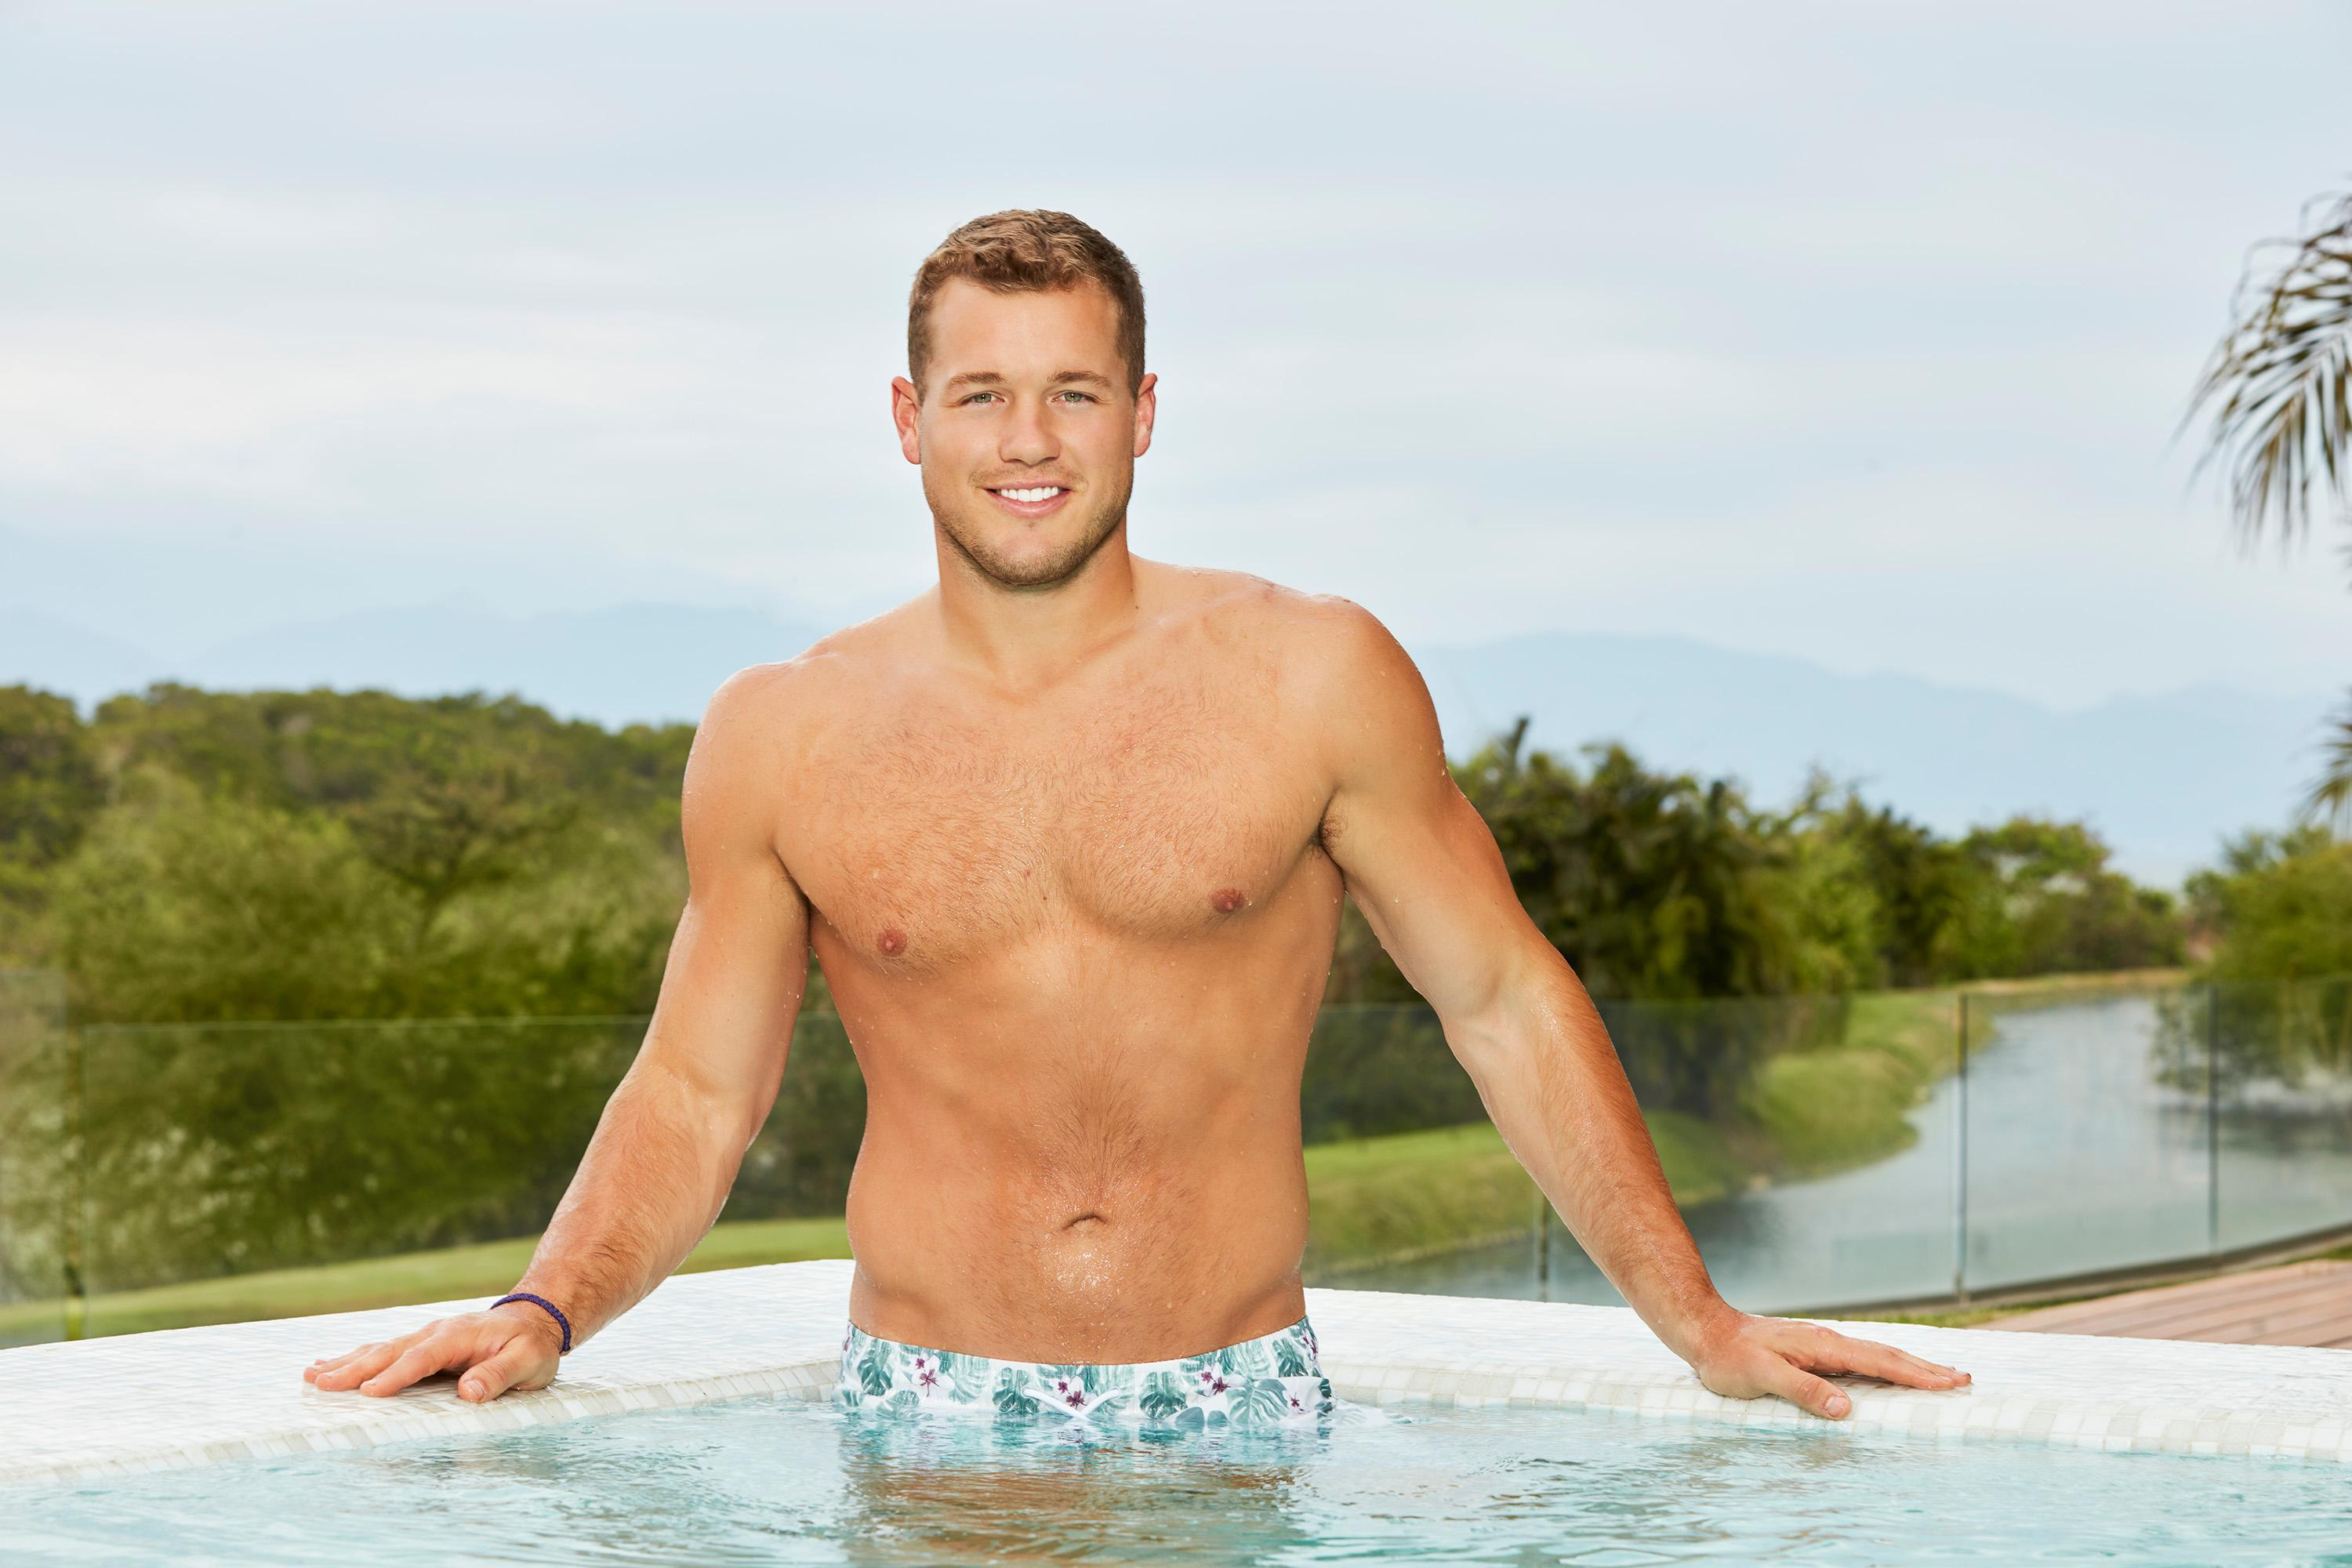 On to happier times for Colton... let's talk about Paradise! (Image: ABC/Craig Sjodin)